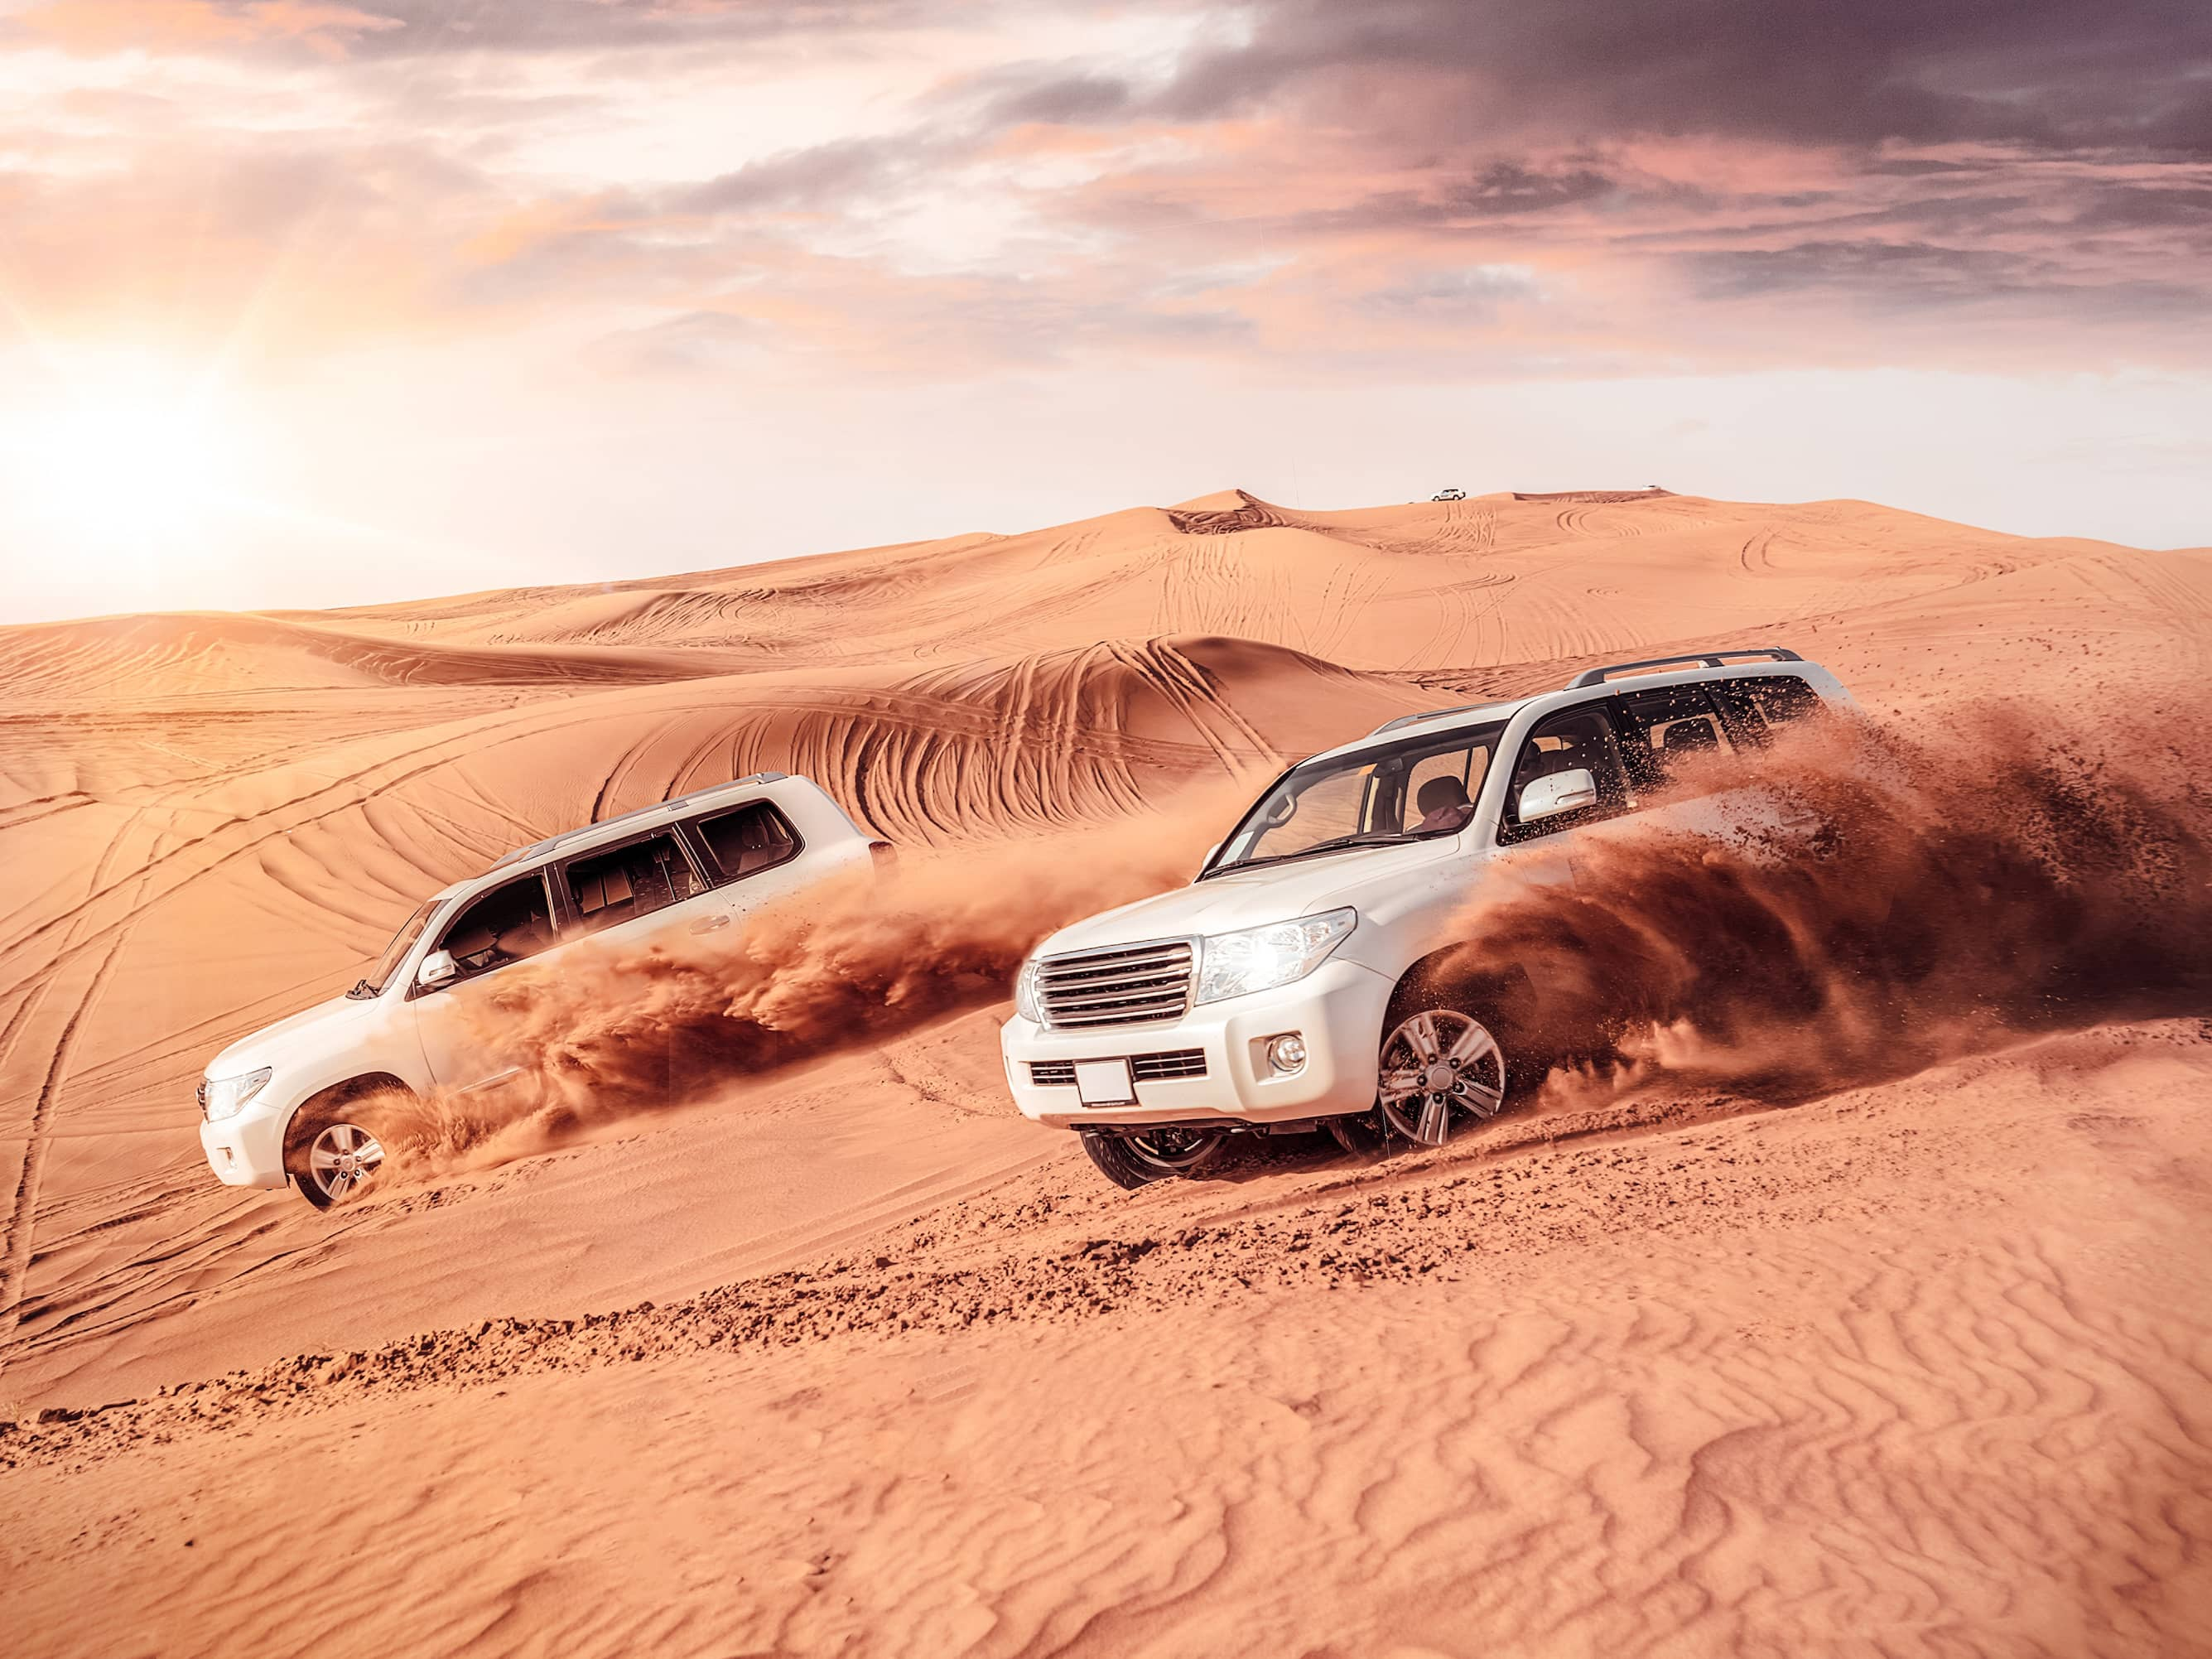 Race through the Dunes in a 4x4